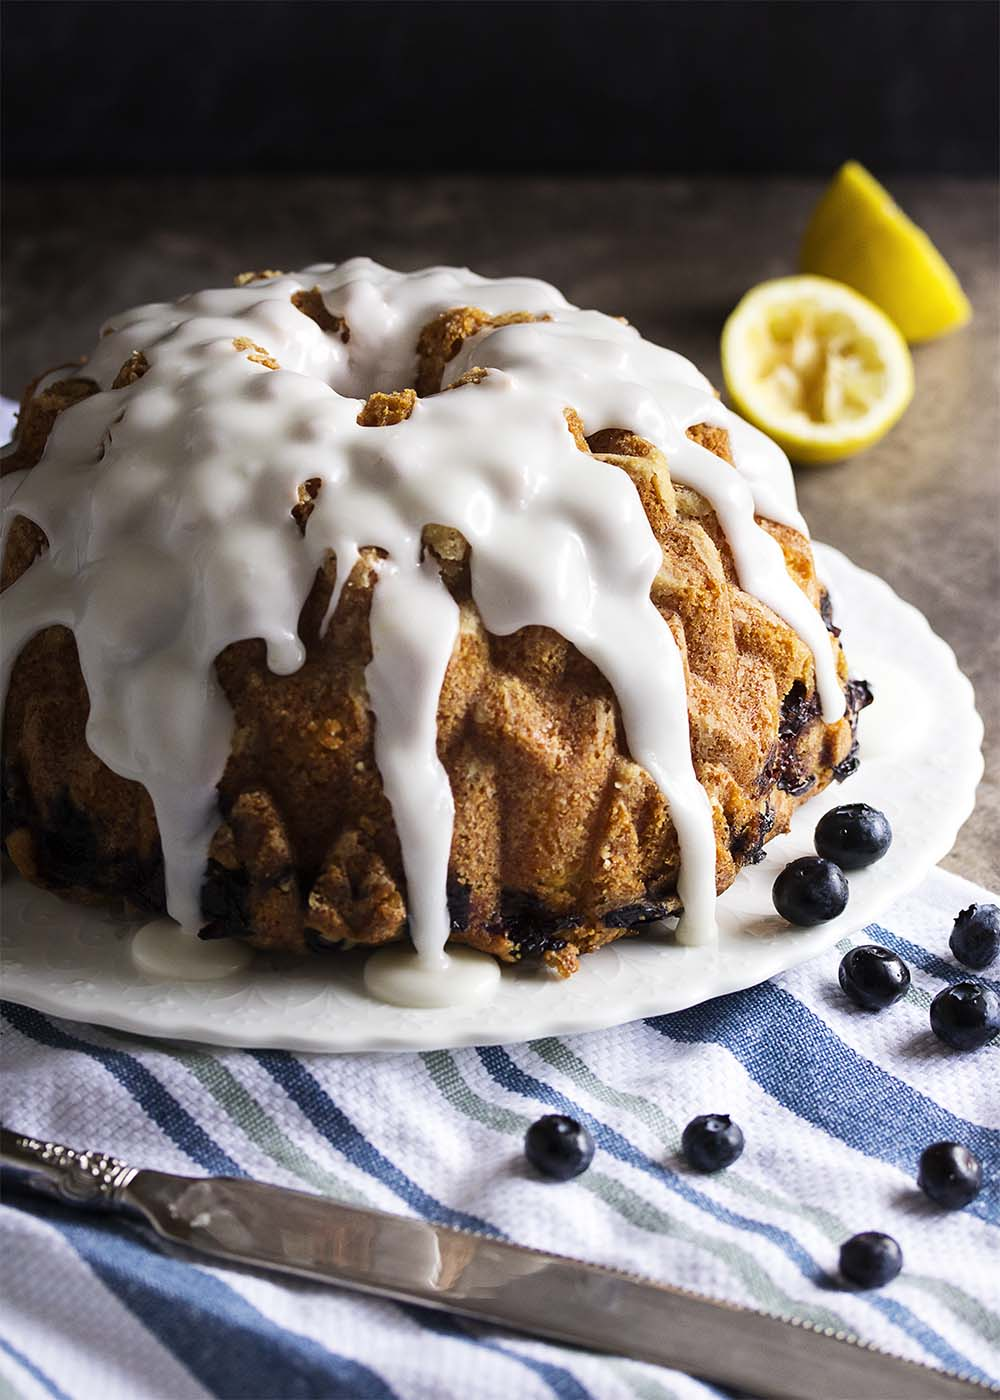 Blueberry Yogurt Cake This Bundt Is Full Of Fresh Blueberries Layers Lemon